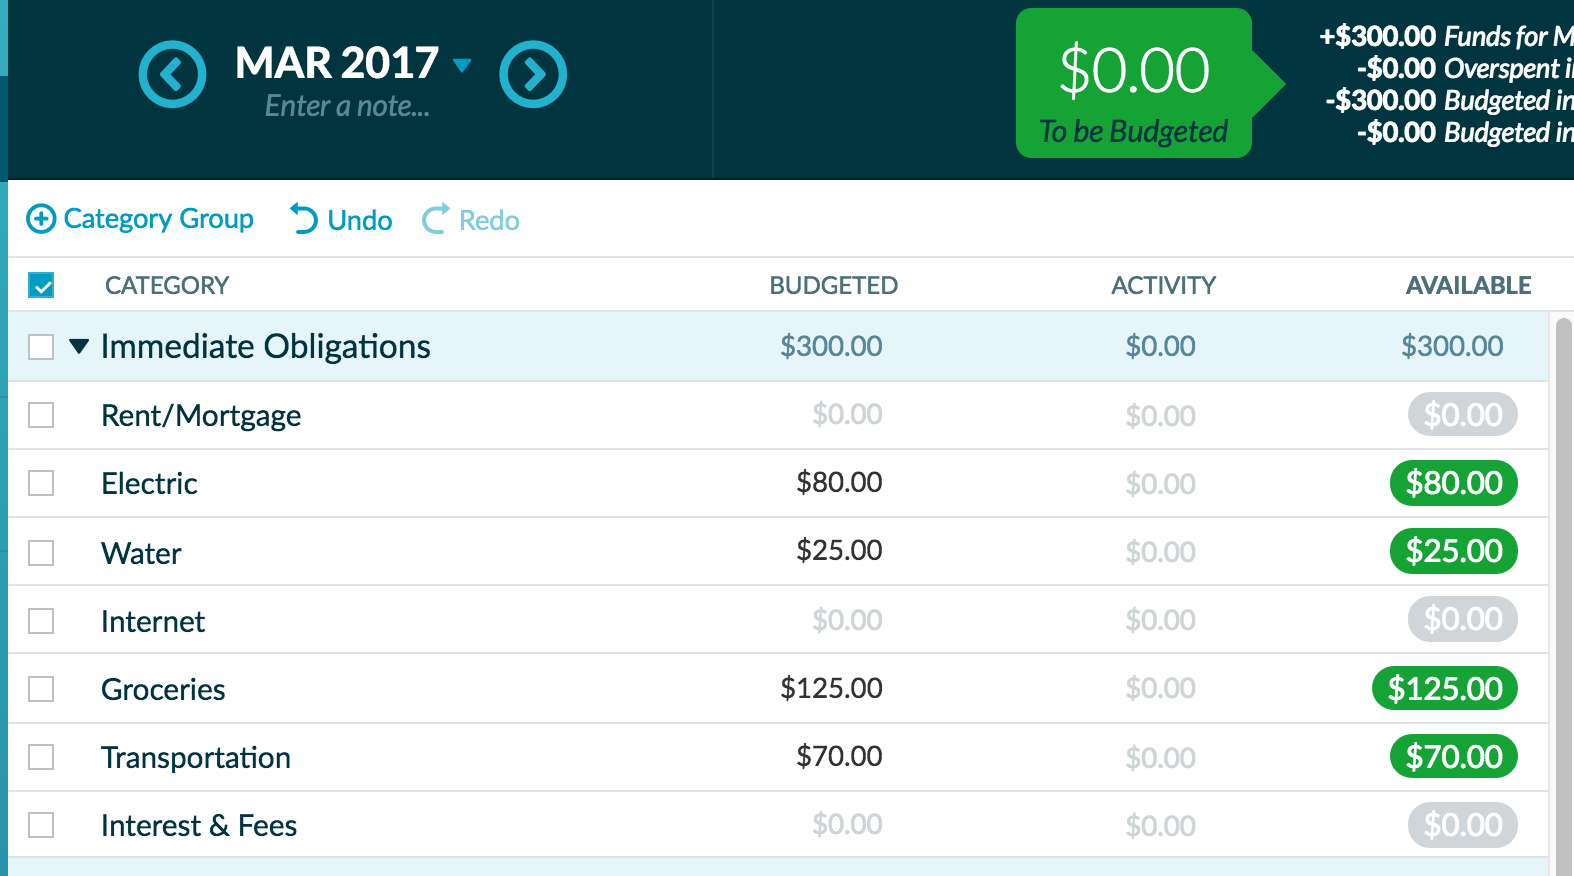 Answers To The 10 Most Common Budgeting Questions Ynab